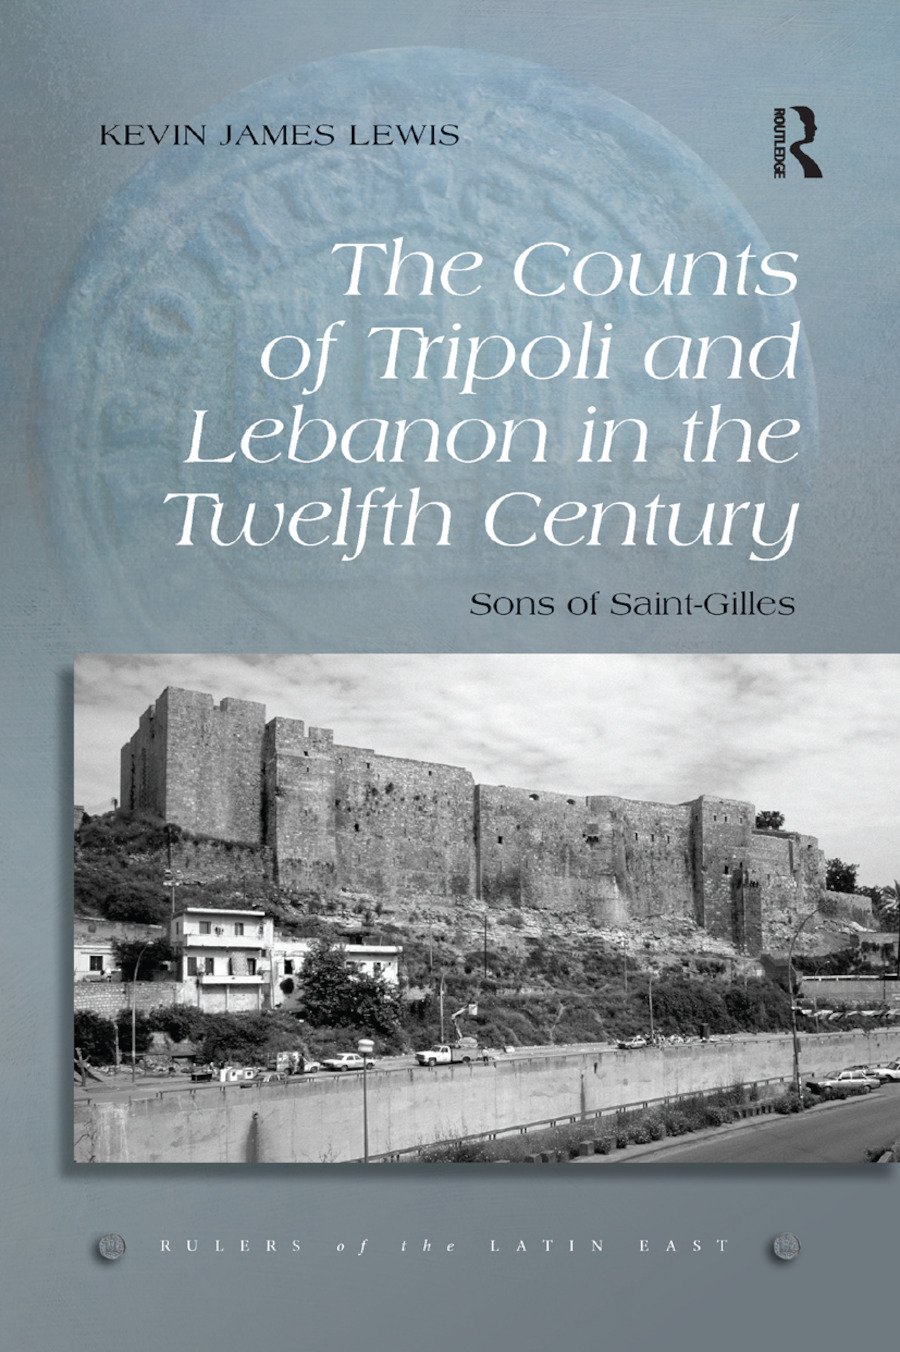 The Counts of Tripoli and Lebanon in the Twelfth Century